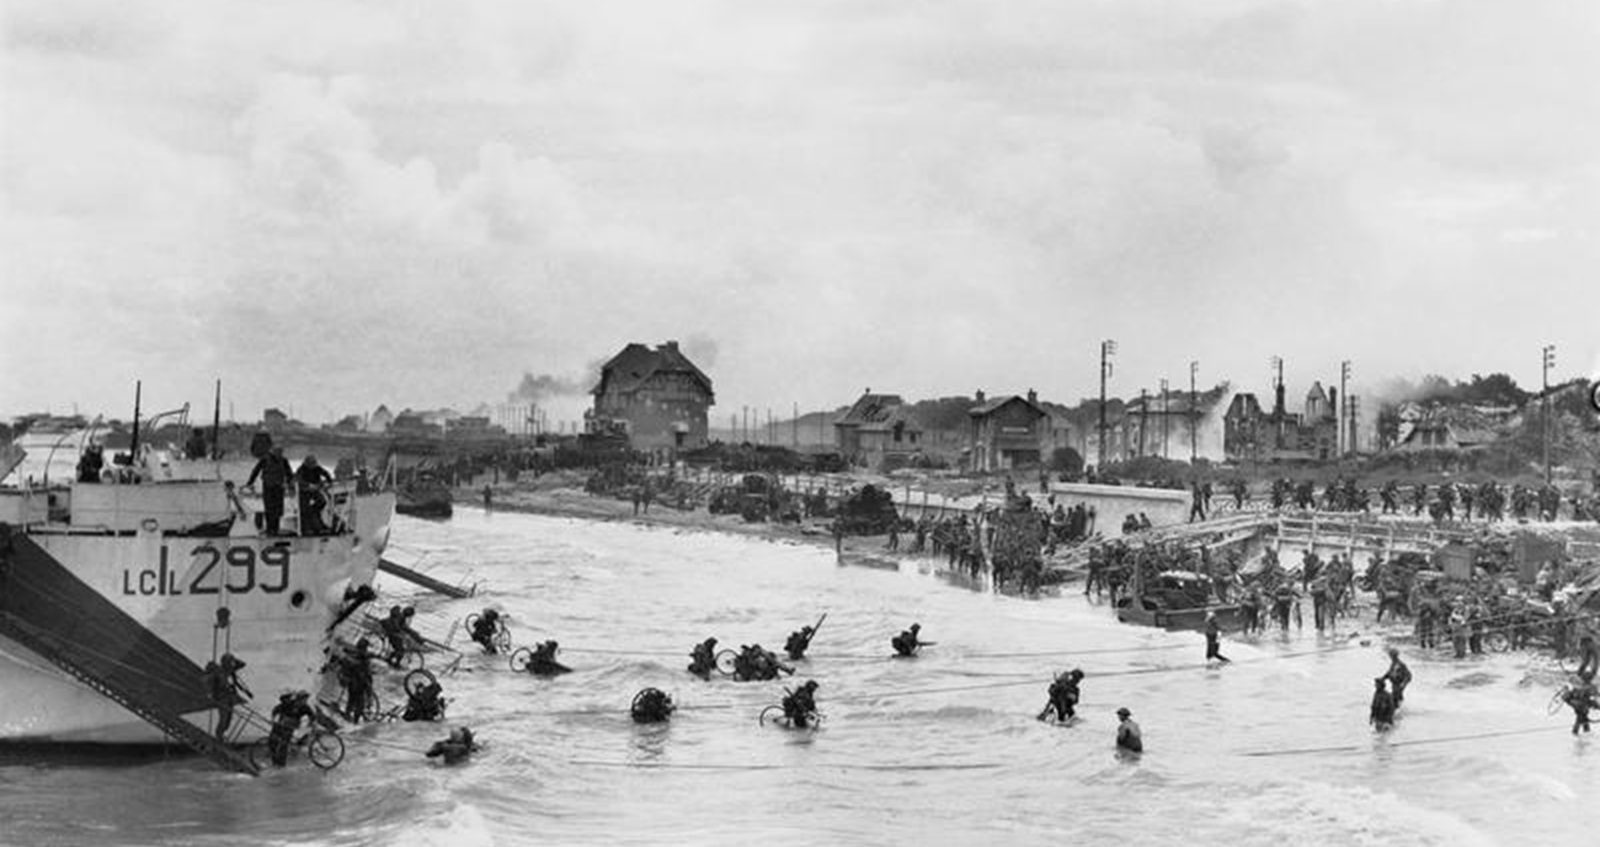 Troops of 9th Canadian Infantry Brigade disembarking with bicycles onto Nan White beach, 6 June 1944.